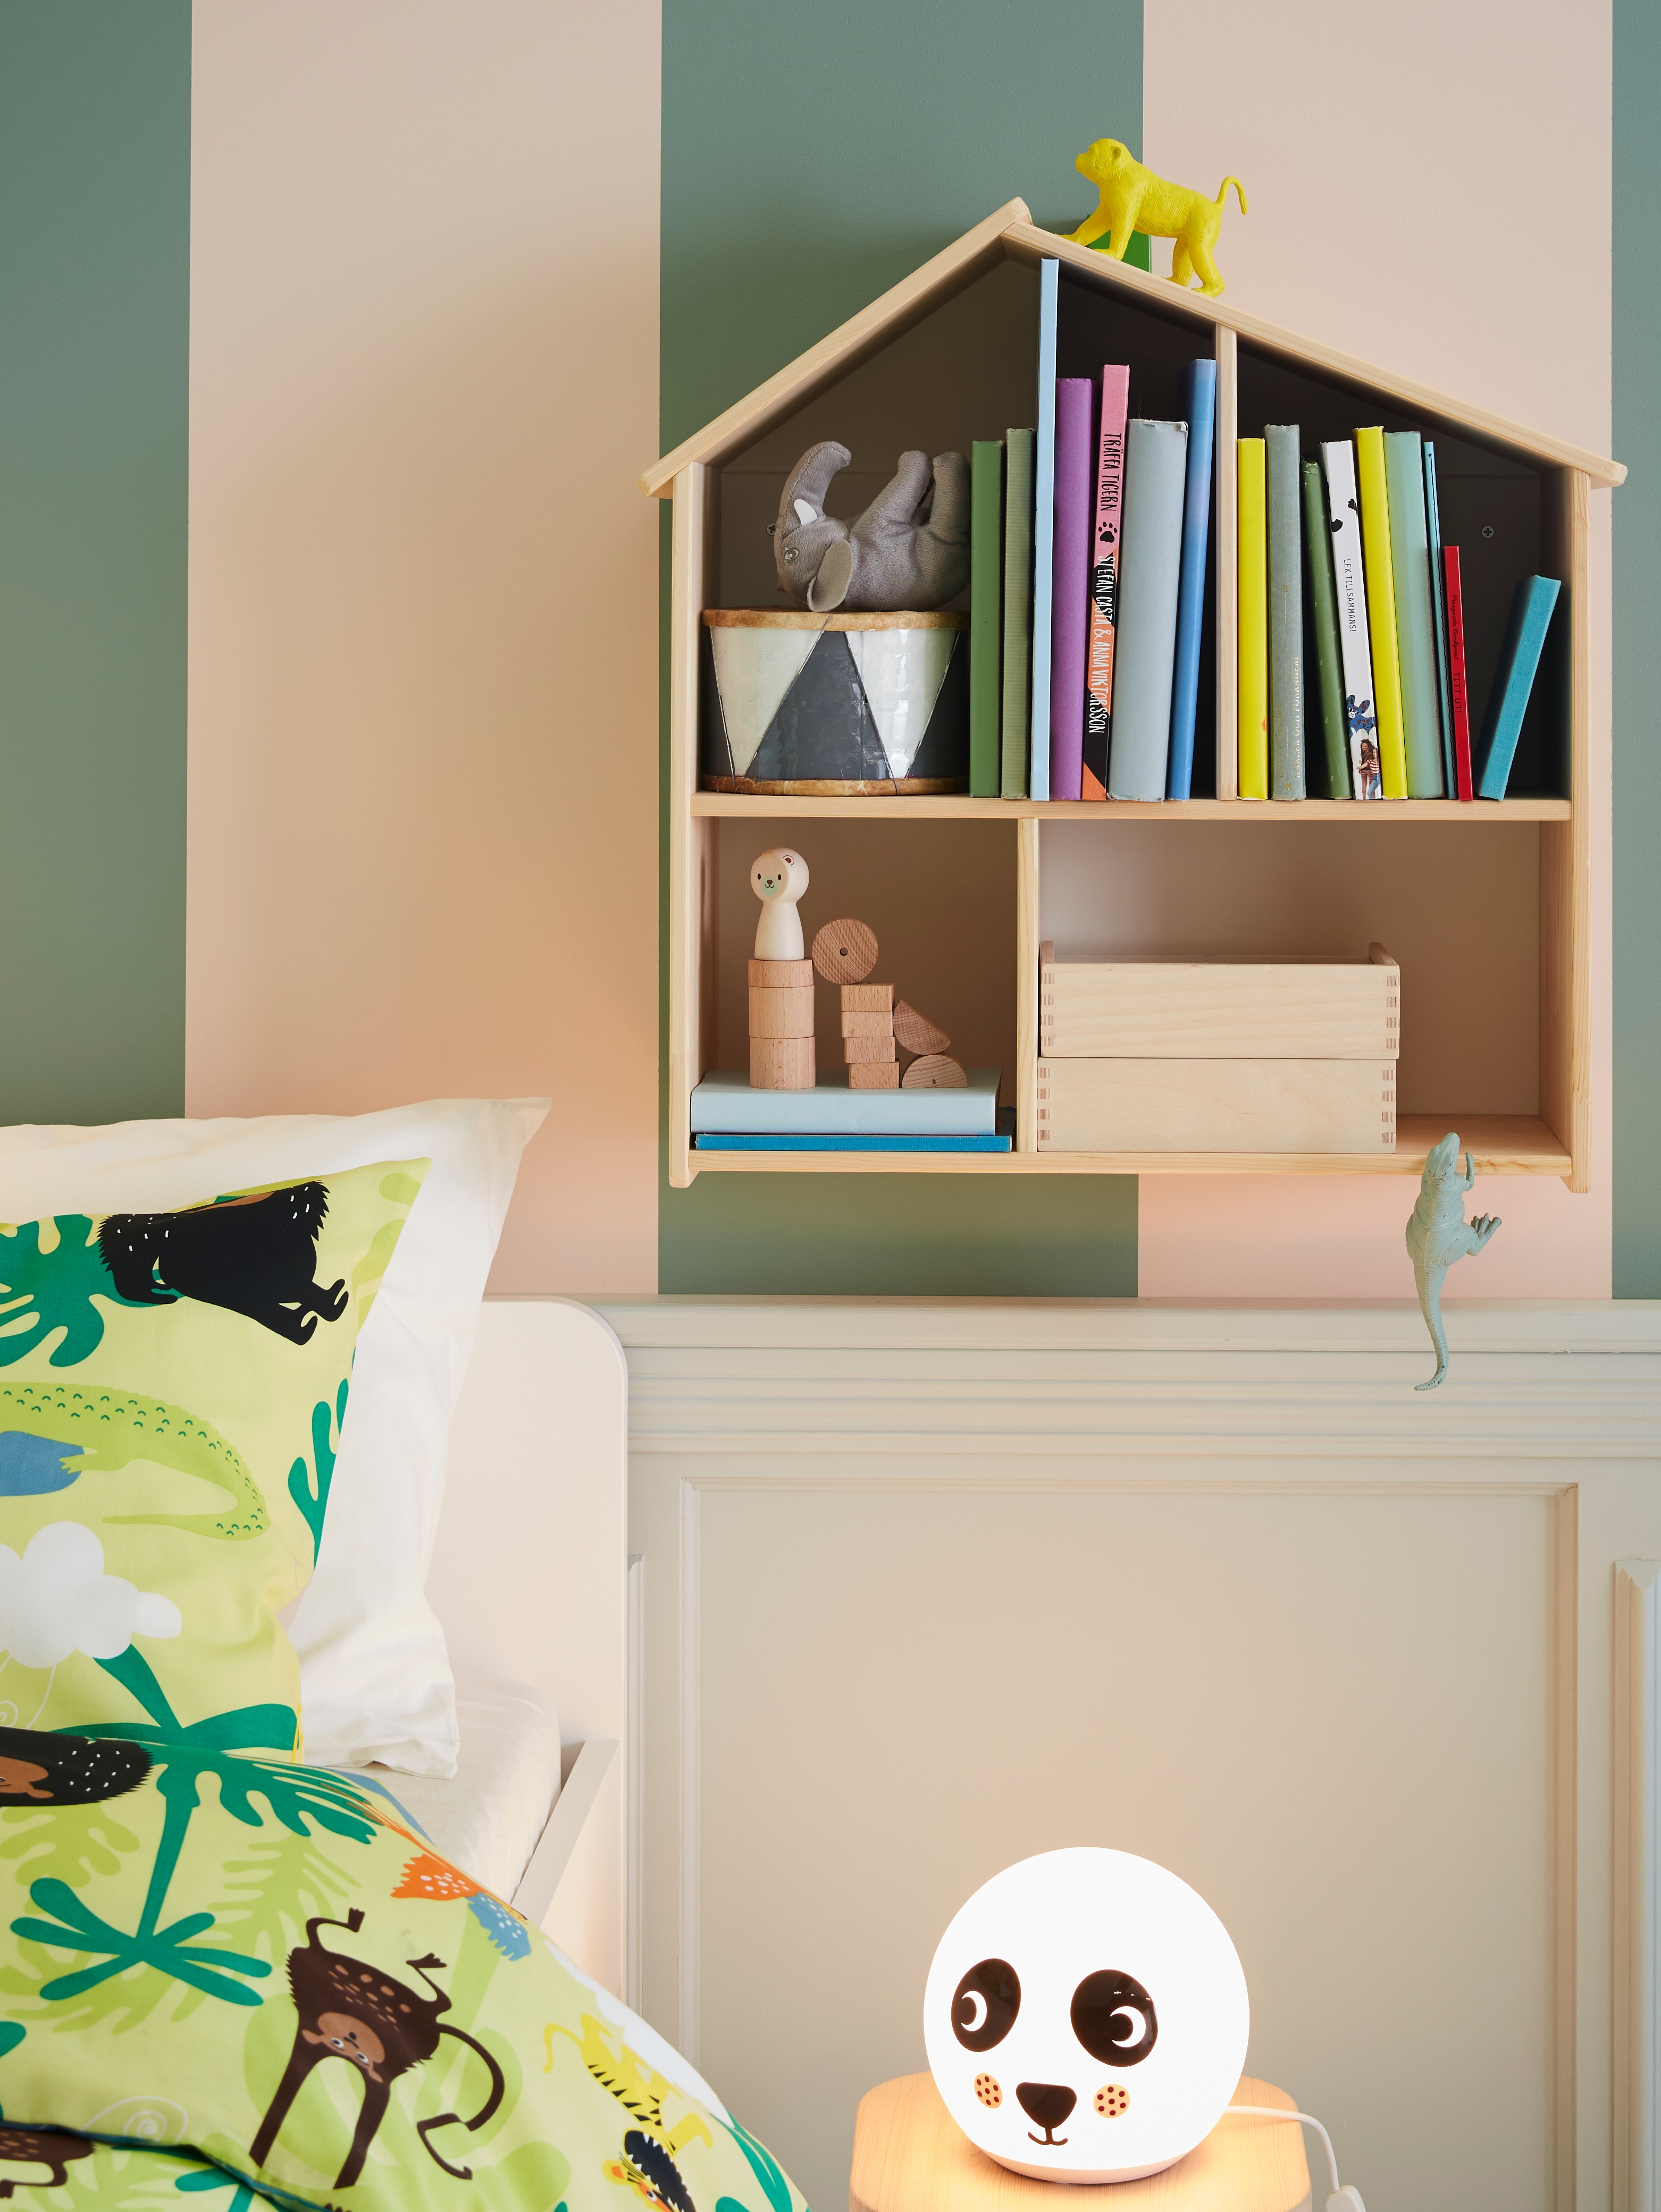 Children's bedroom with colourful bed linens, panda LED table lamp and wooden wall shelf in shape of a doll house.